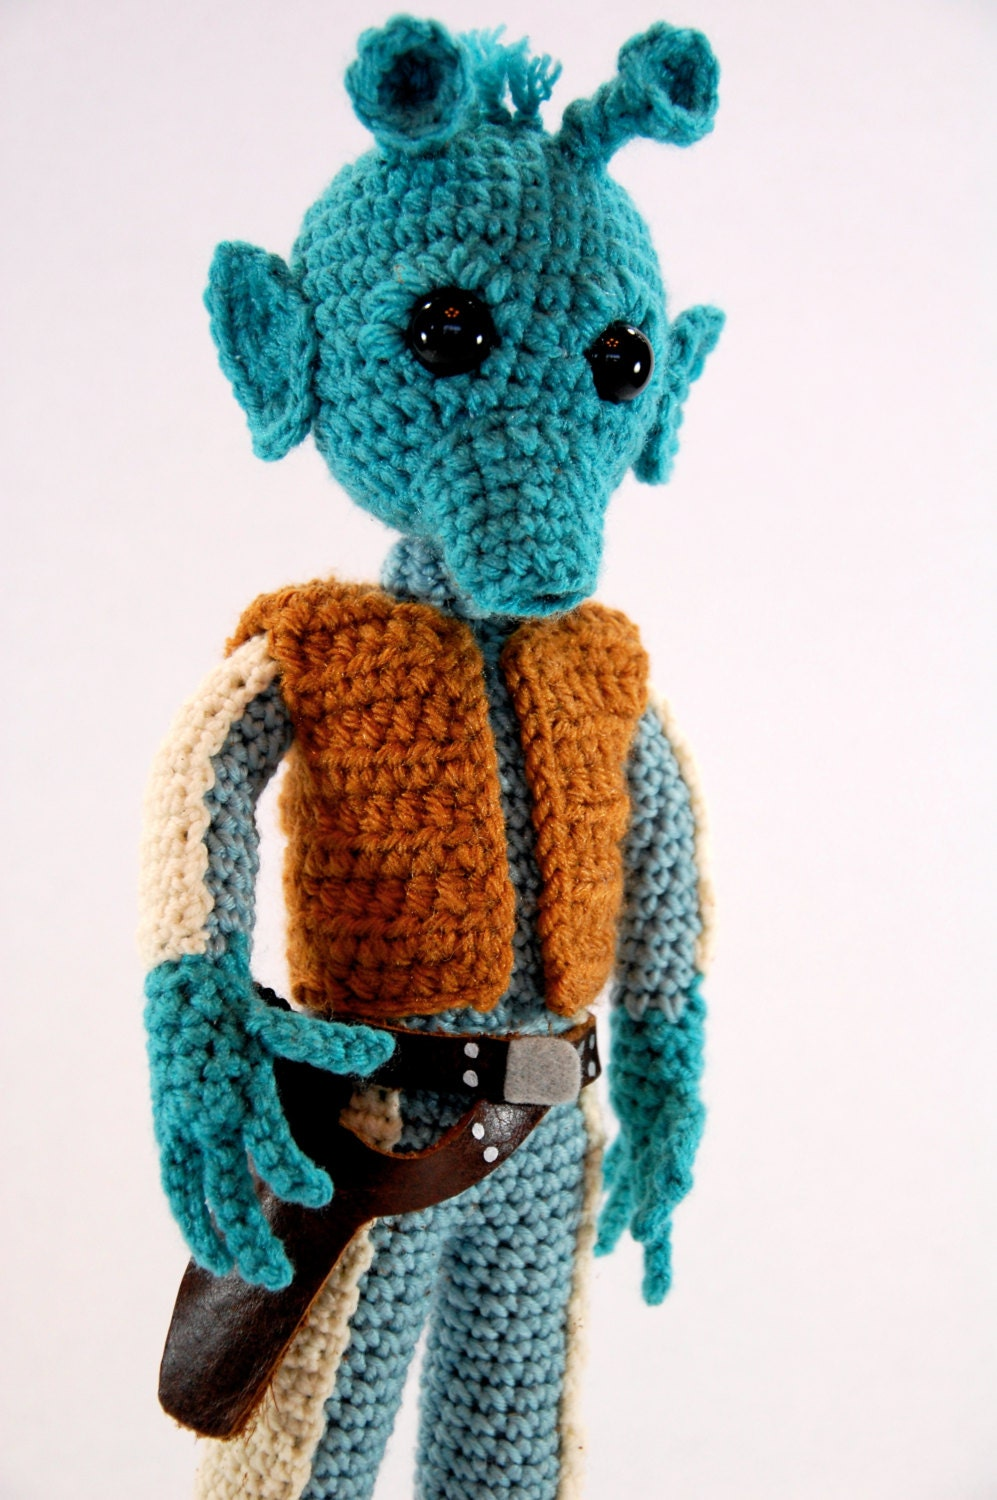 Free Crochet Star Wars Doll Patterns : Greedo Star Wars Amigurumi Crochet doll Pattern